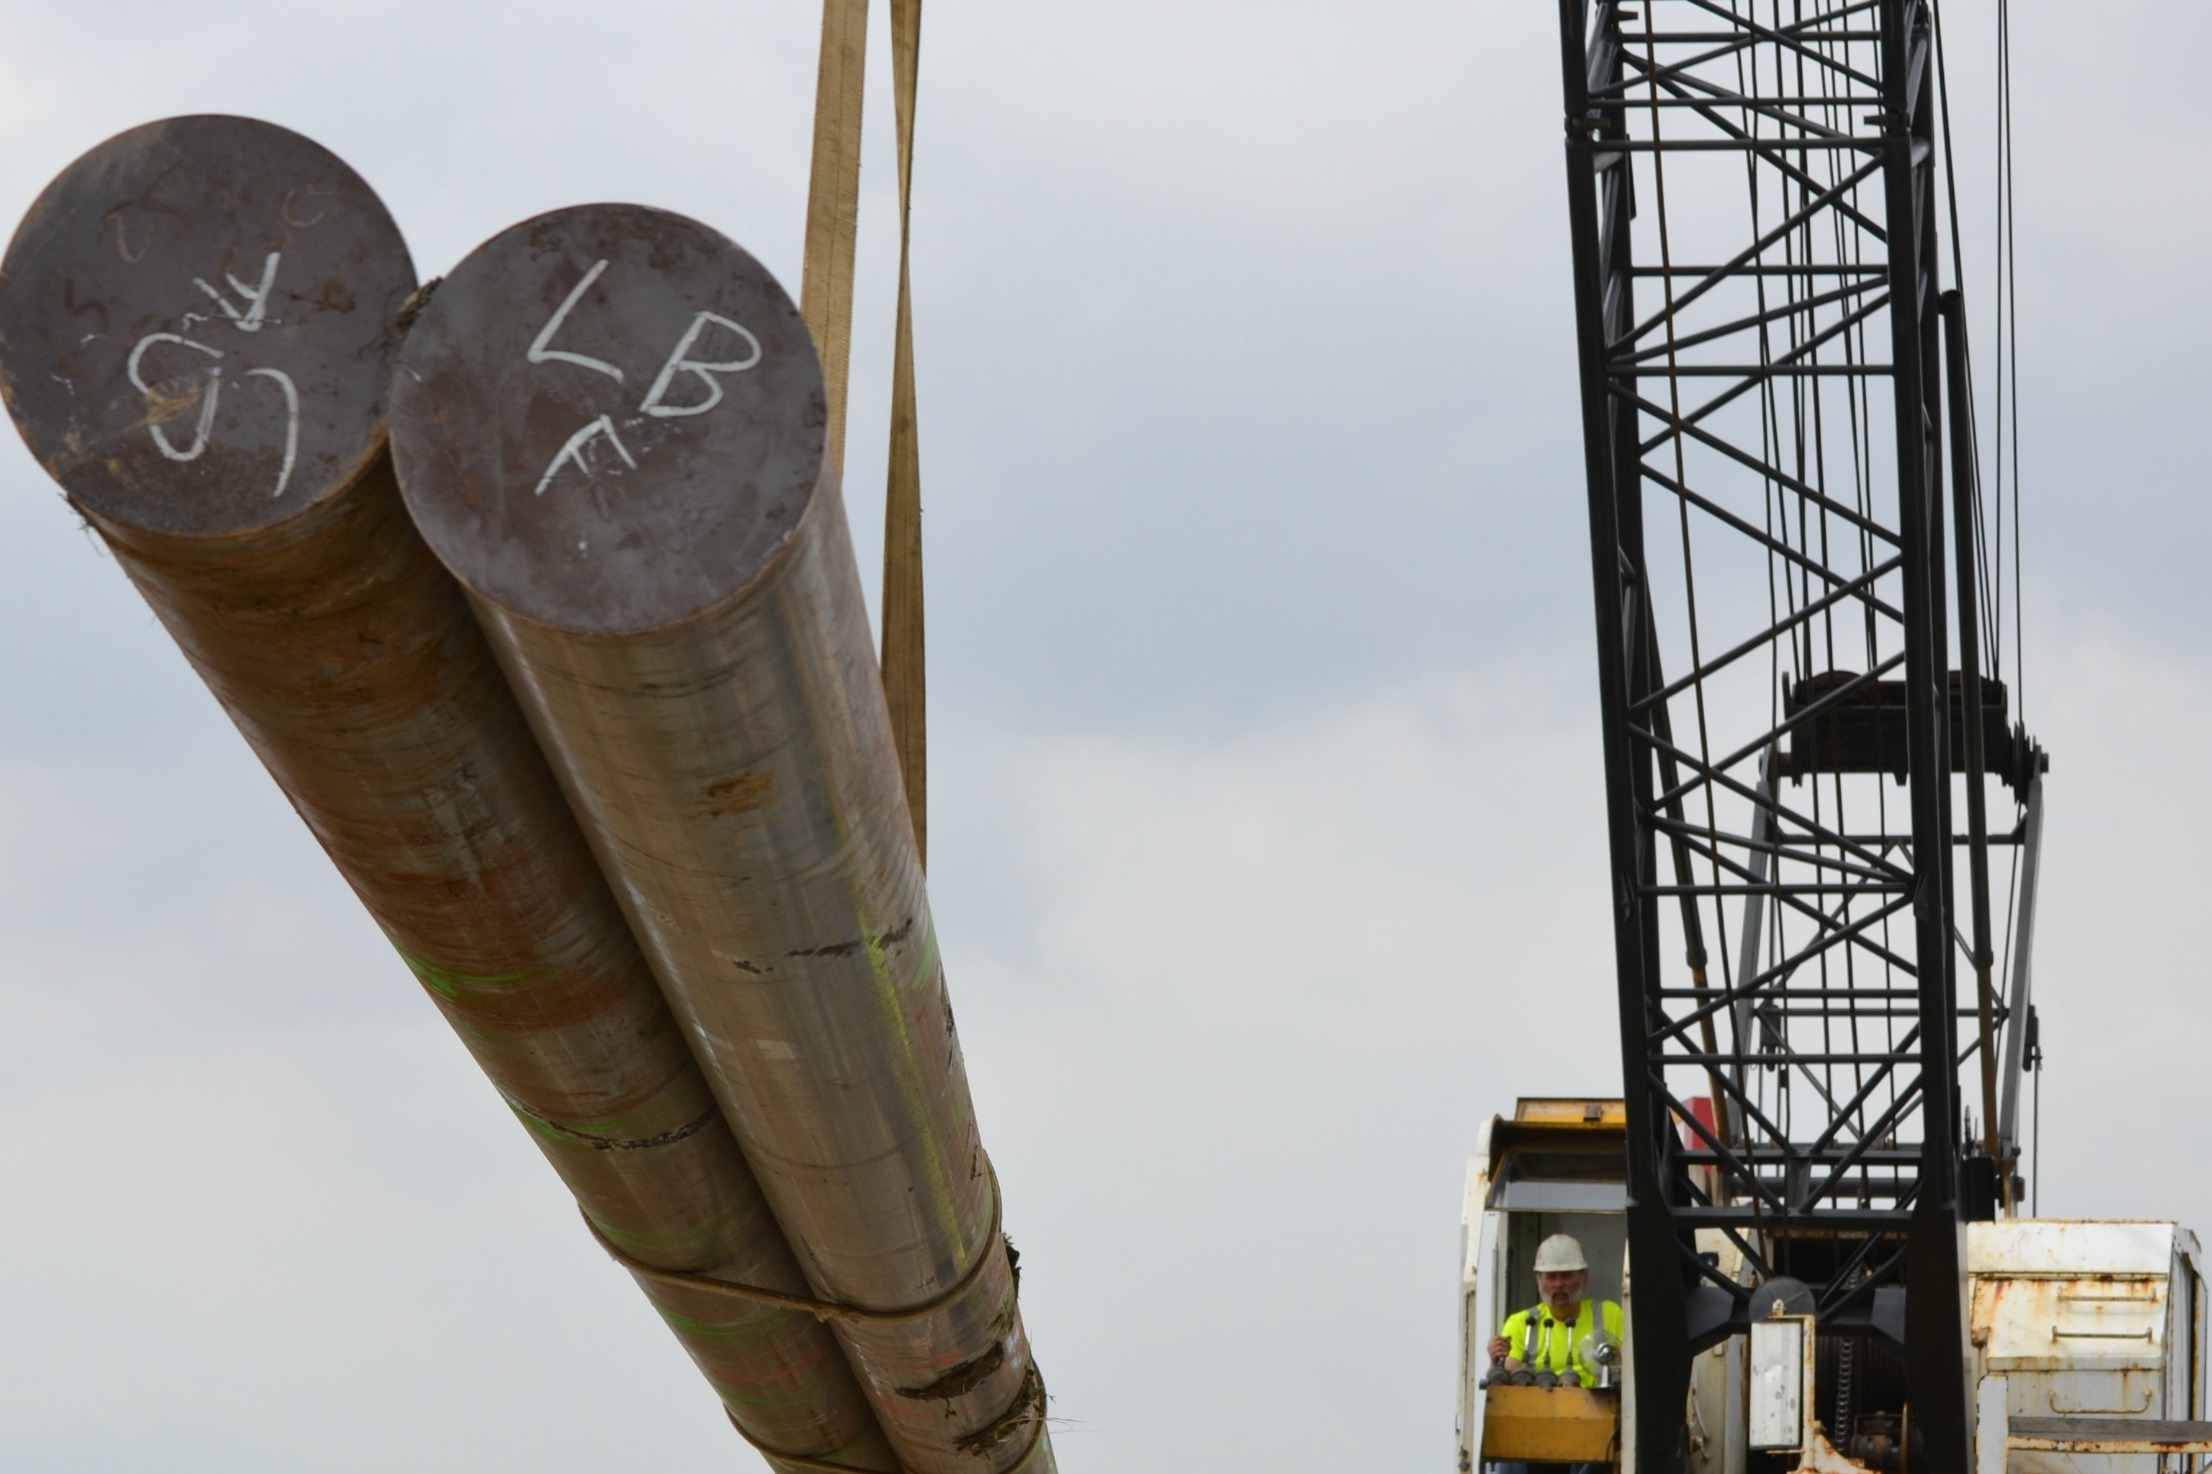 ERW, DSAW and Spiralweld pipe pile